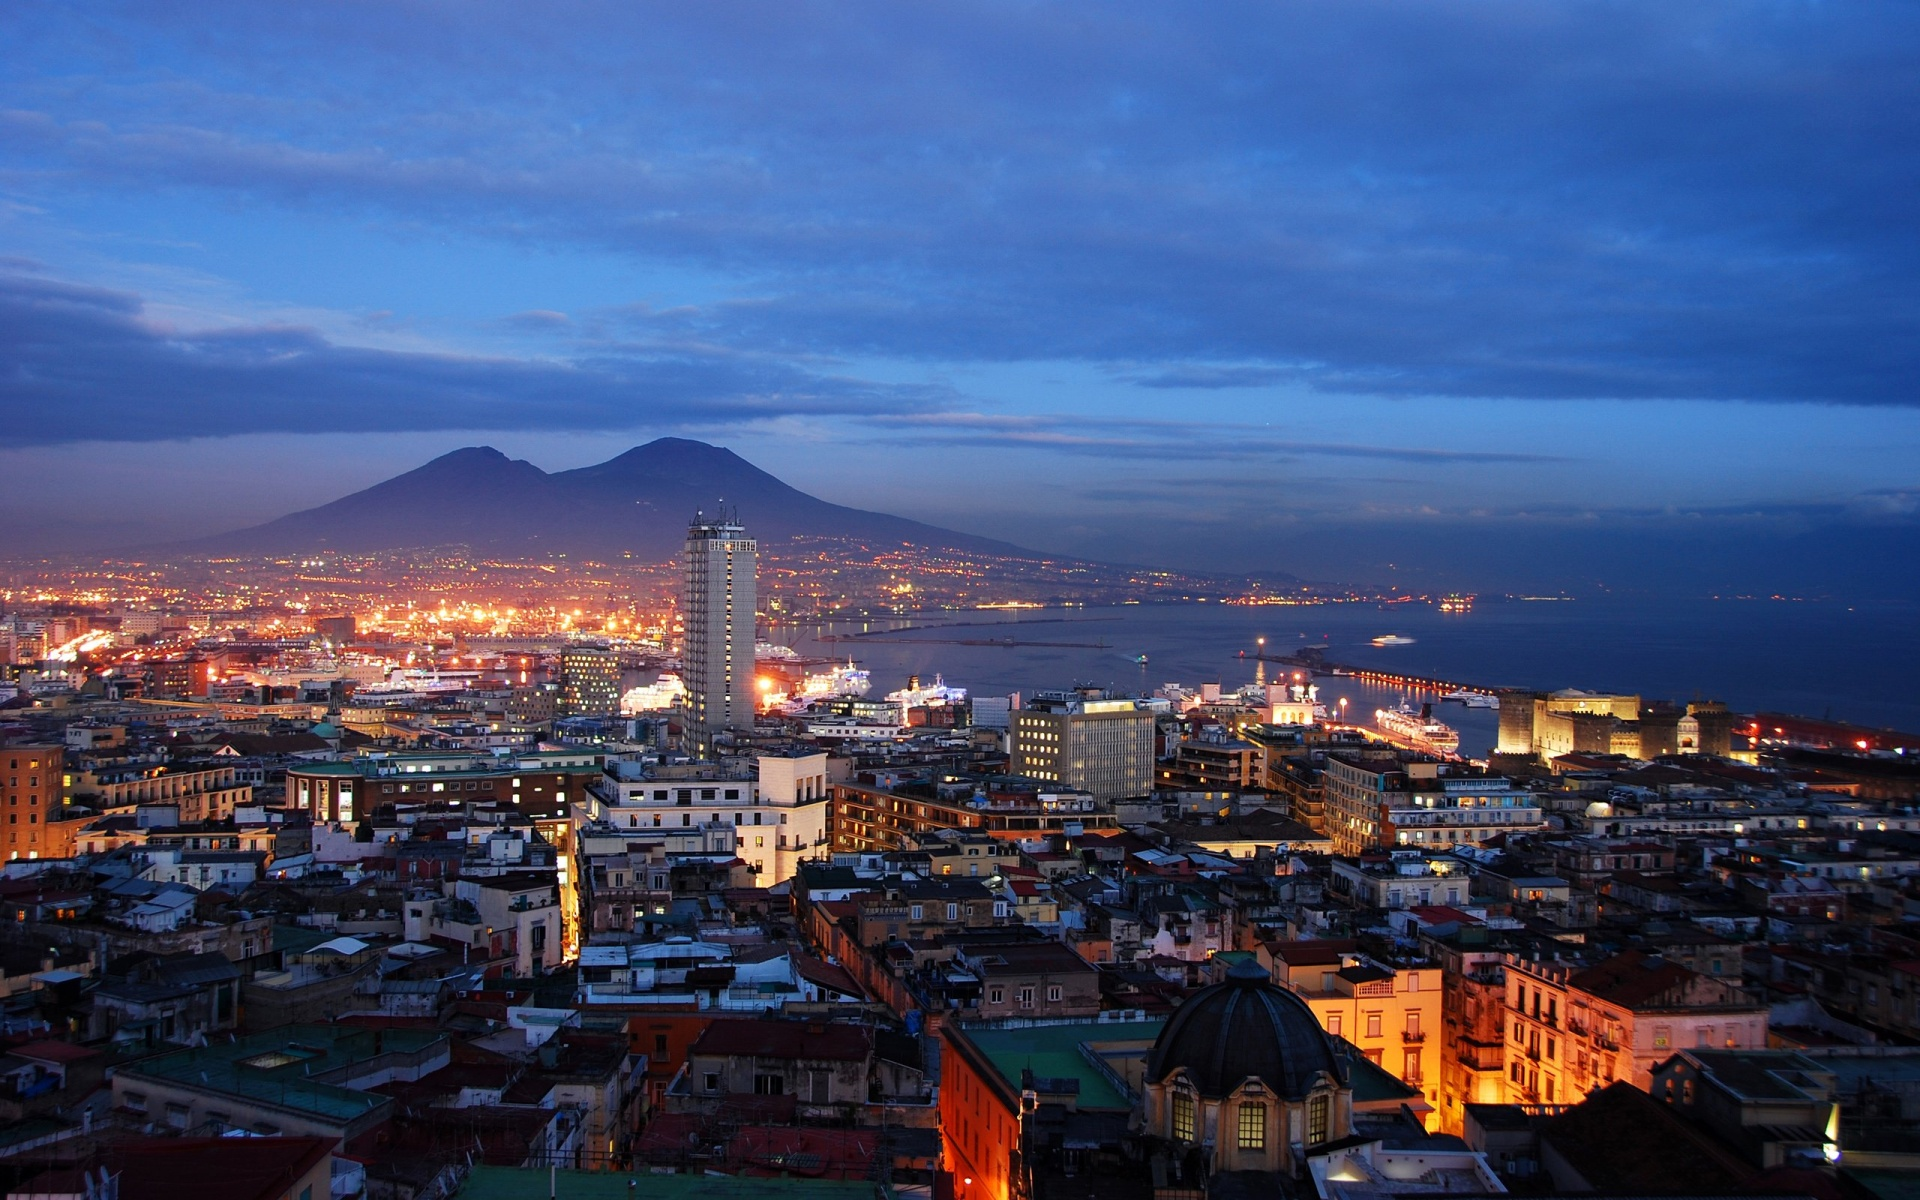 Naples Full HD Wallpaper And Background Image